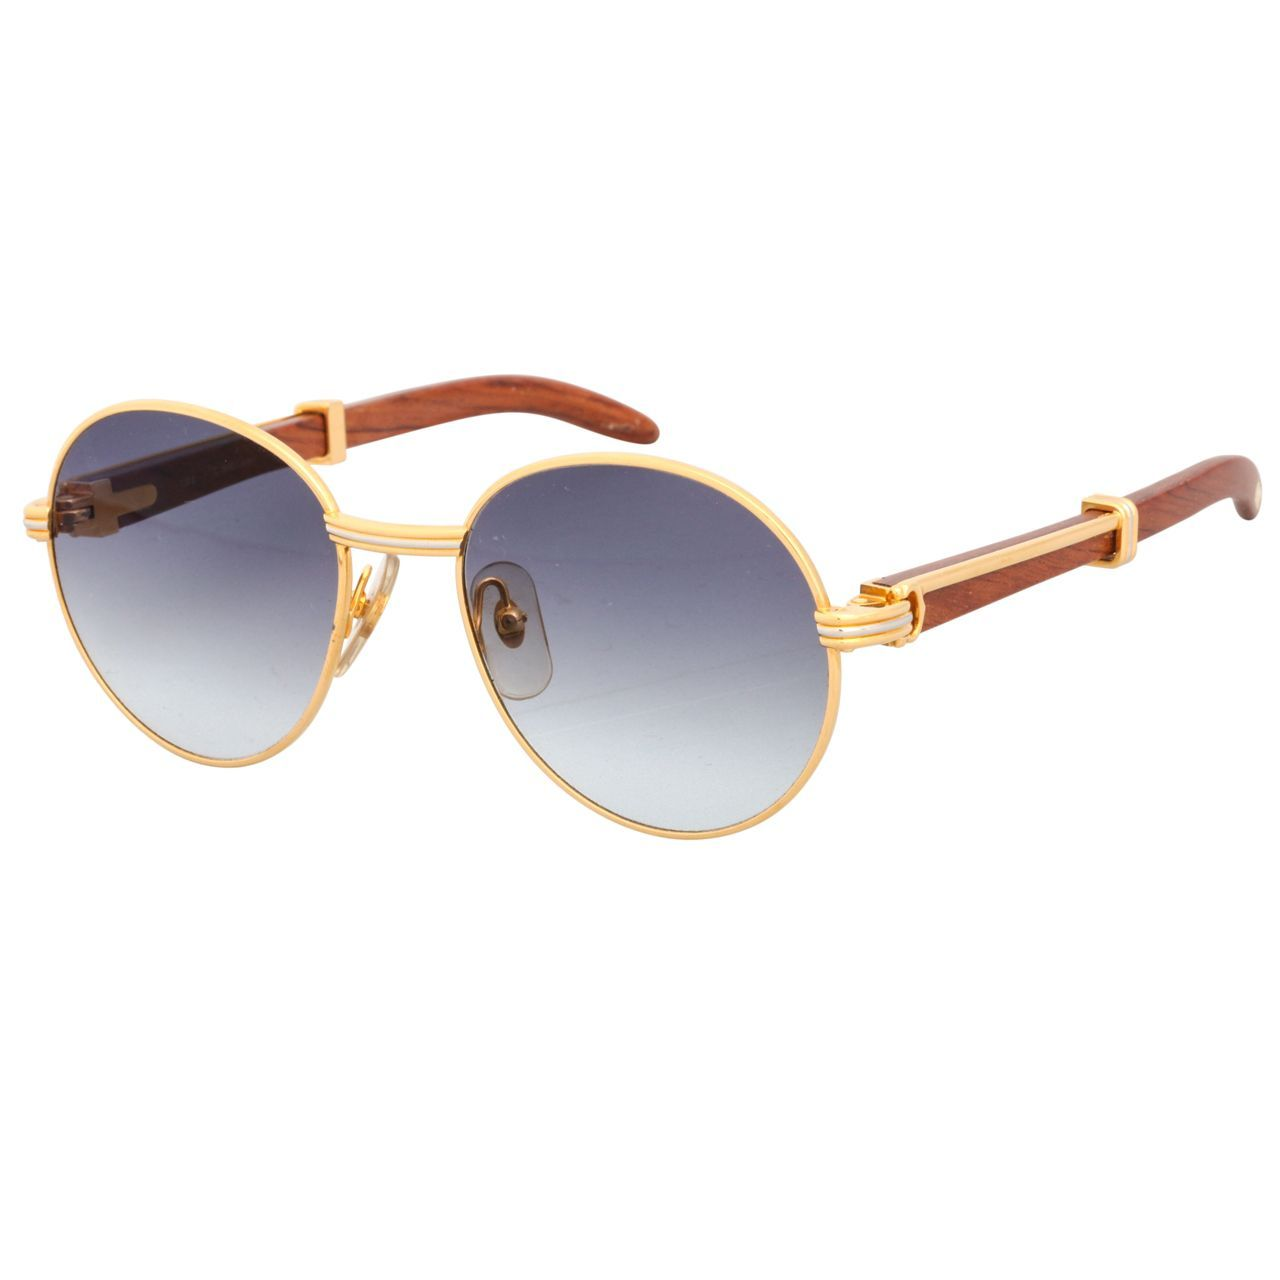 Cartier Bagatelle Palisander Sunglasses | From a collection